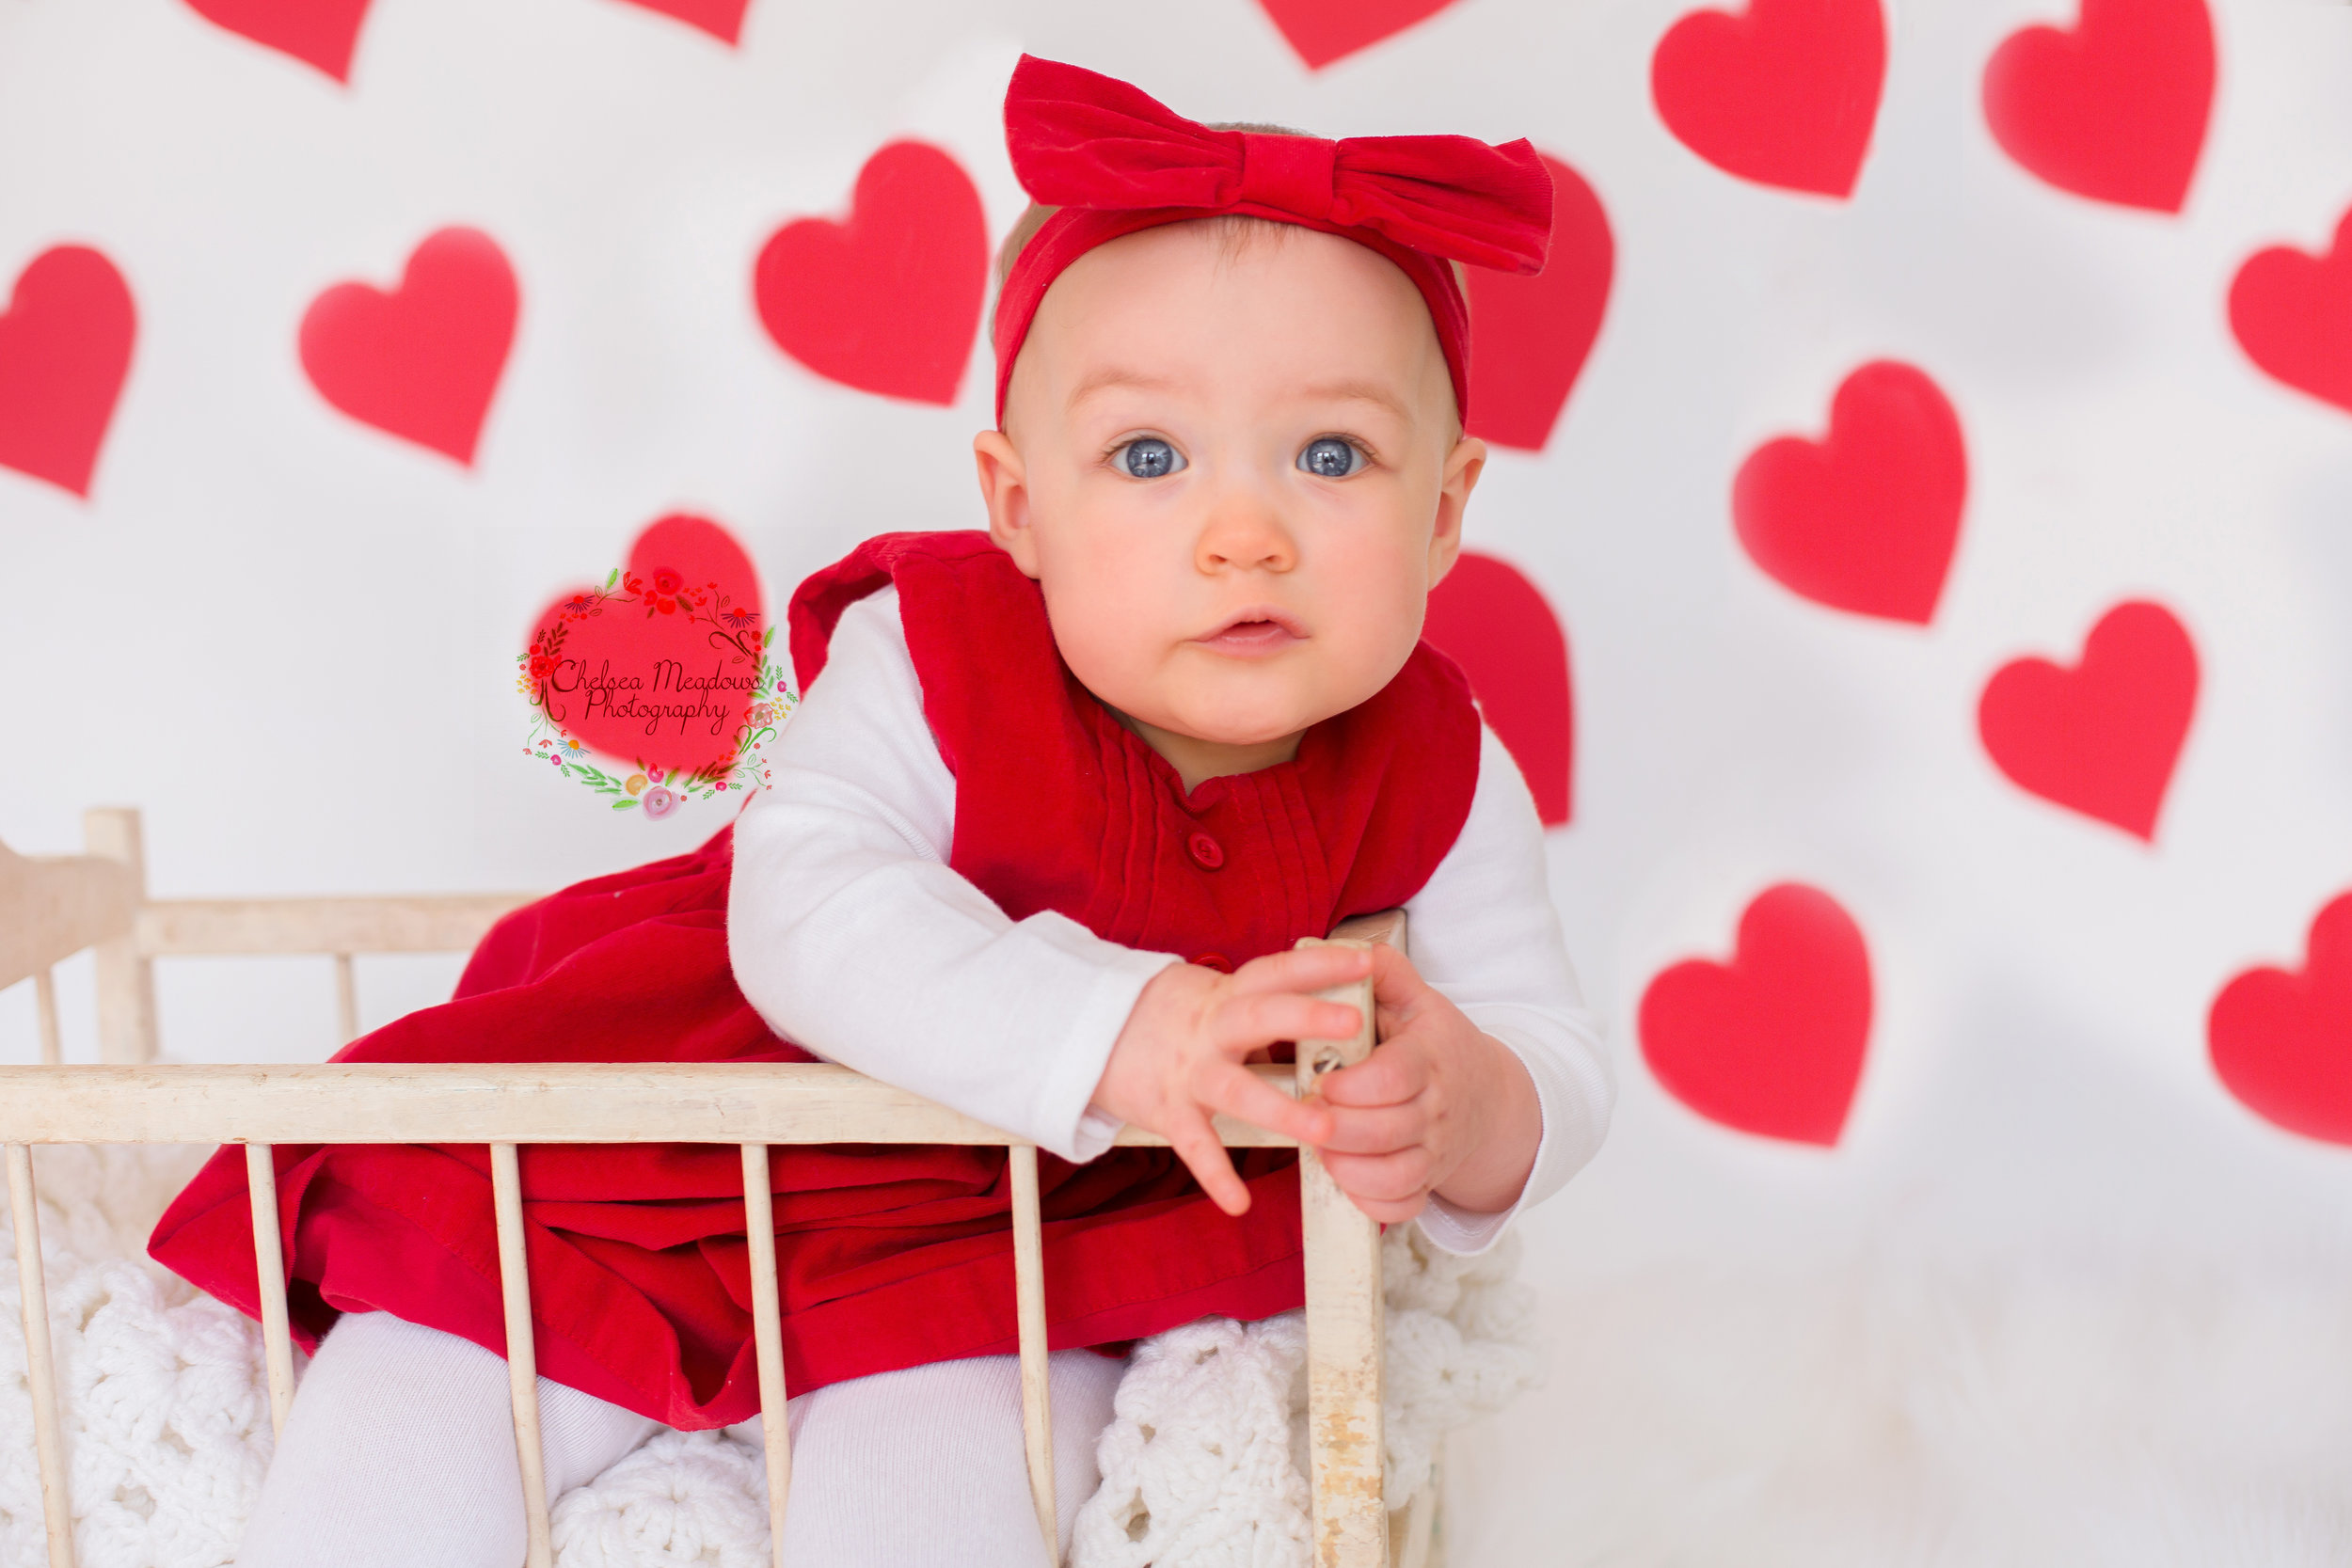 Phina 6 Month Session - Nashville Family Photographer - Chelsea Meadows Photography (15).jpg